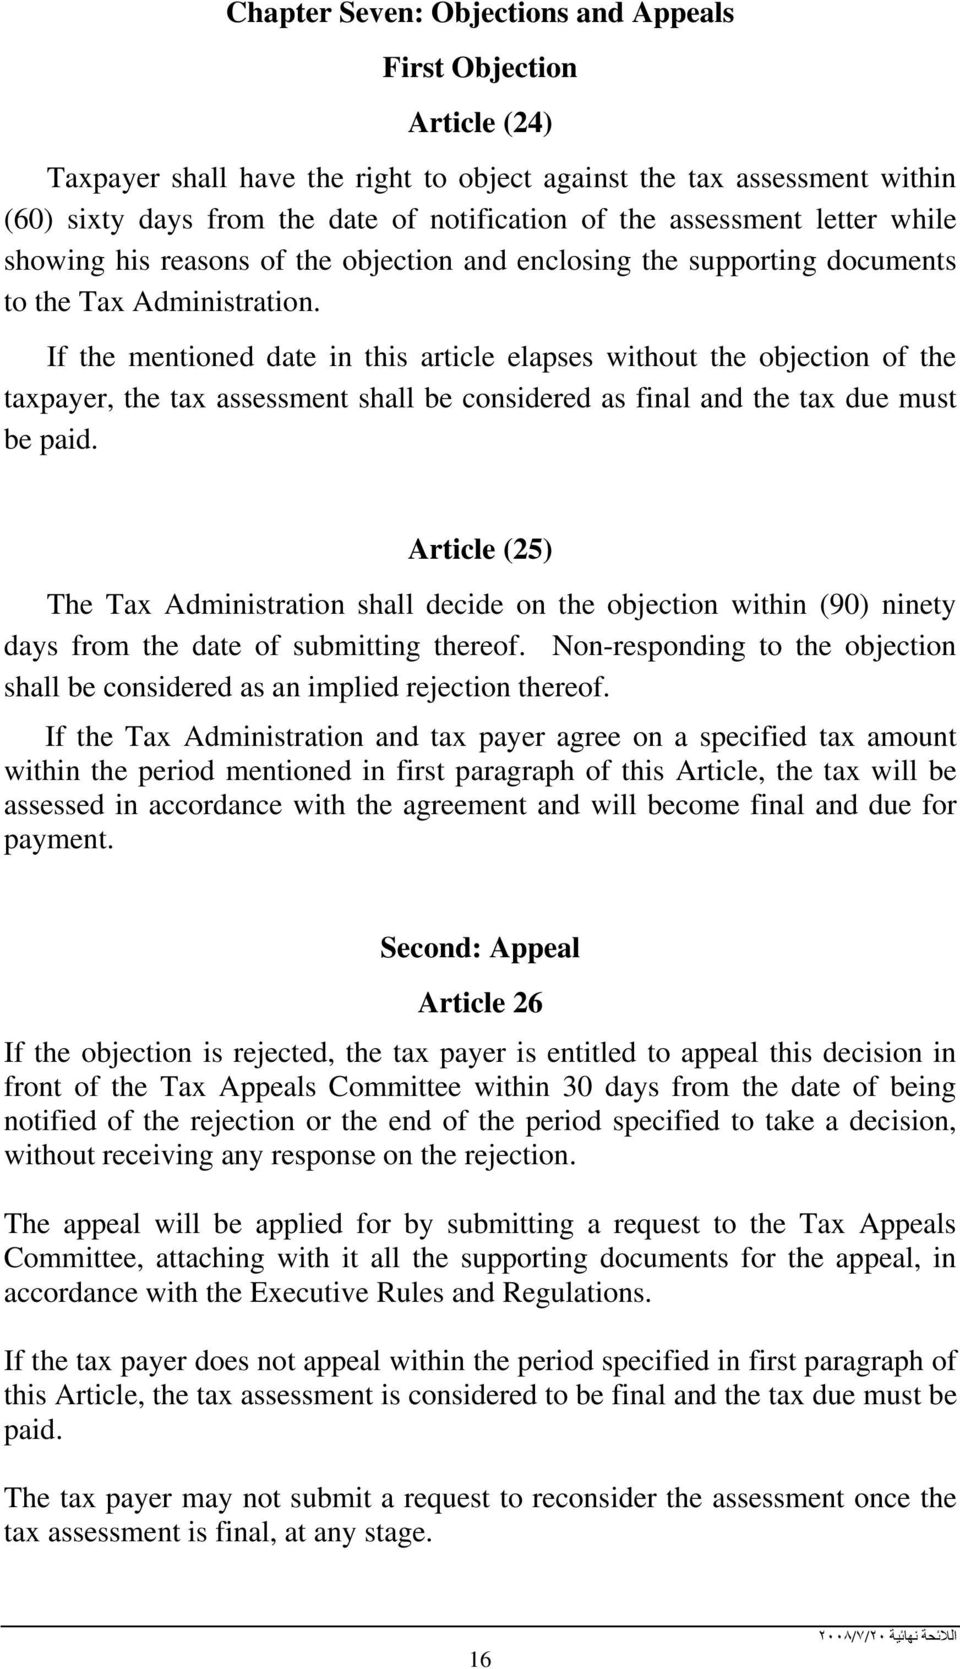 If the mentioned date in this article elapses without the objection of the taxpayer, the tax assessment shall be considered as final and the tax due must be paid.